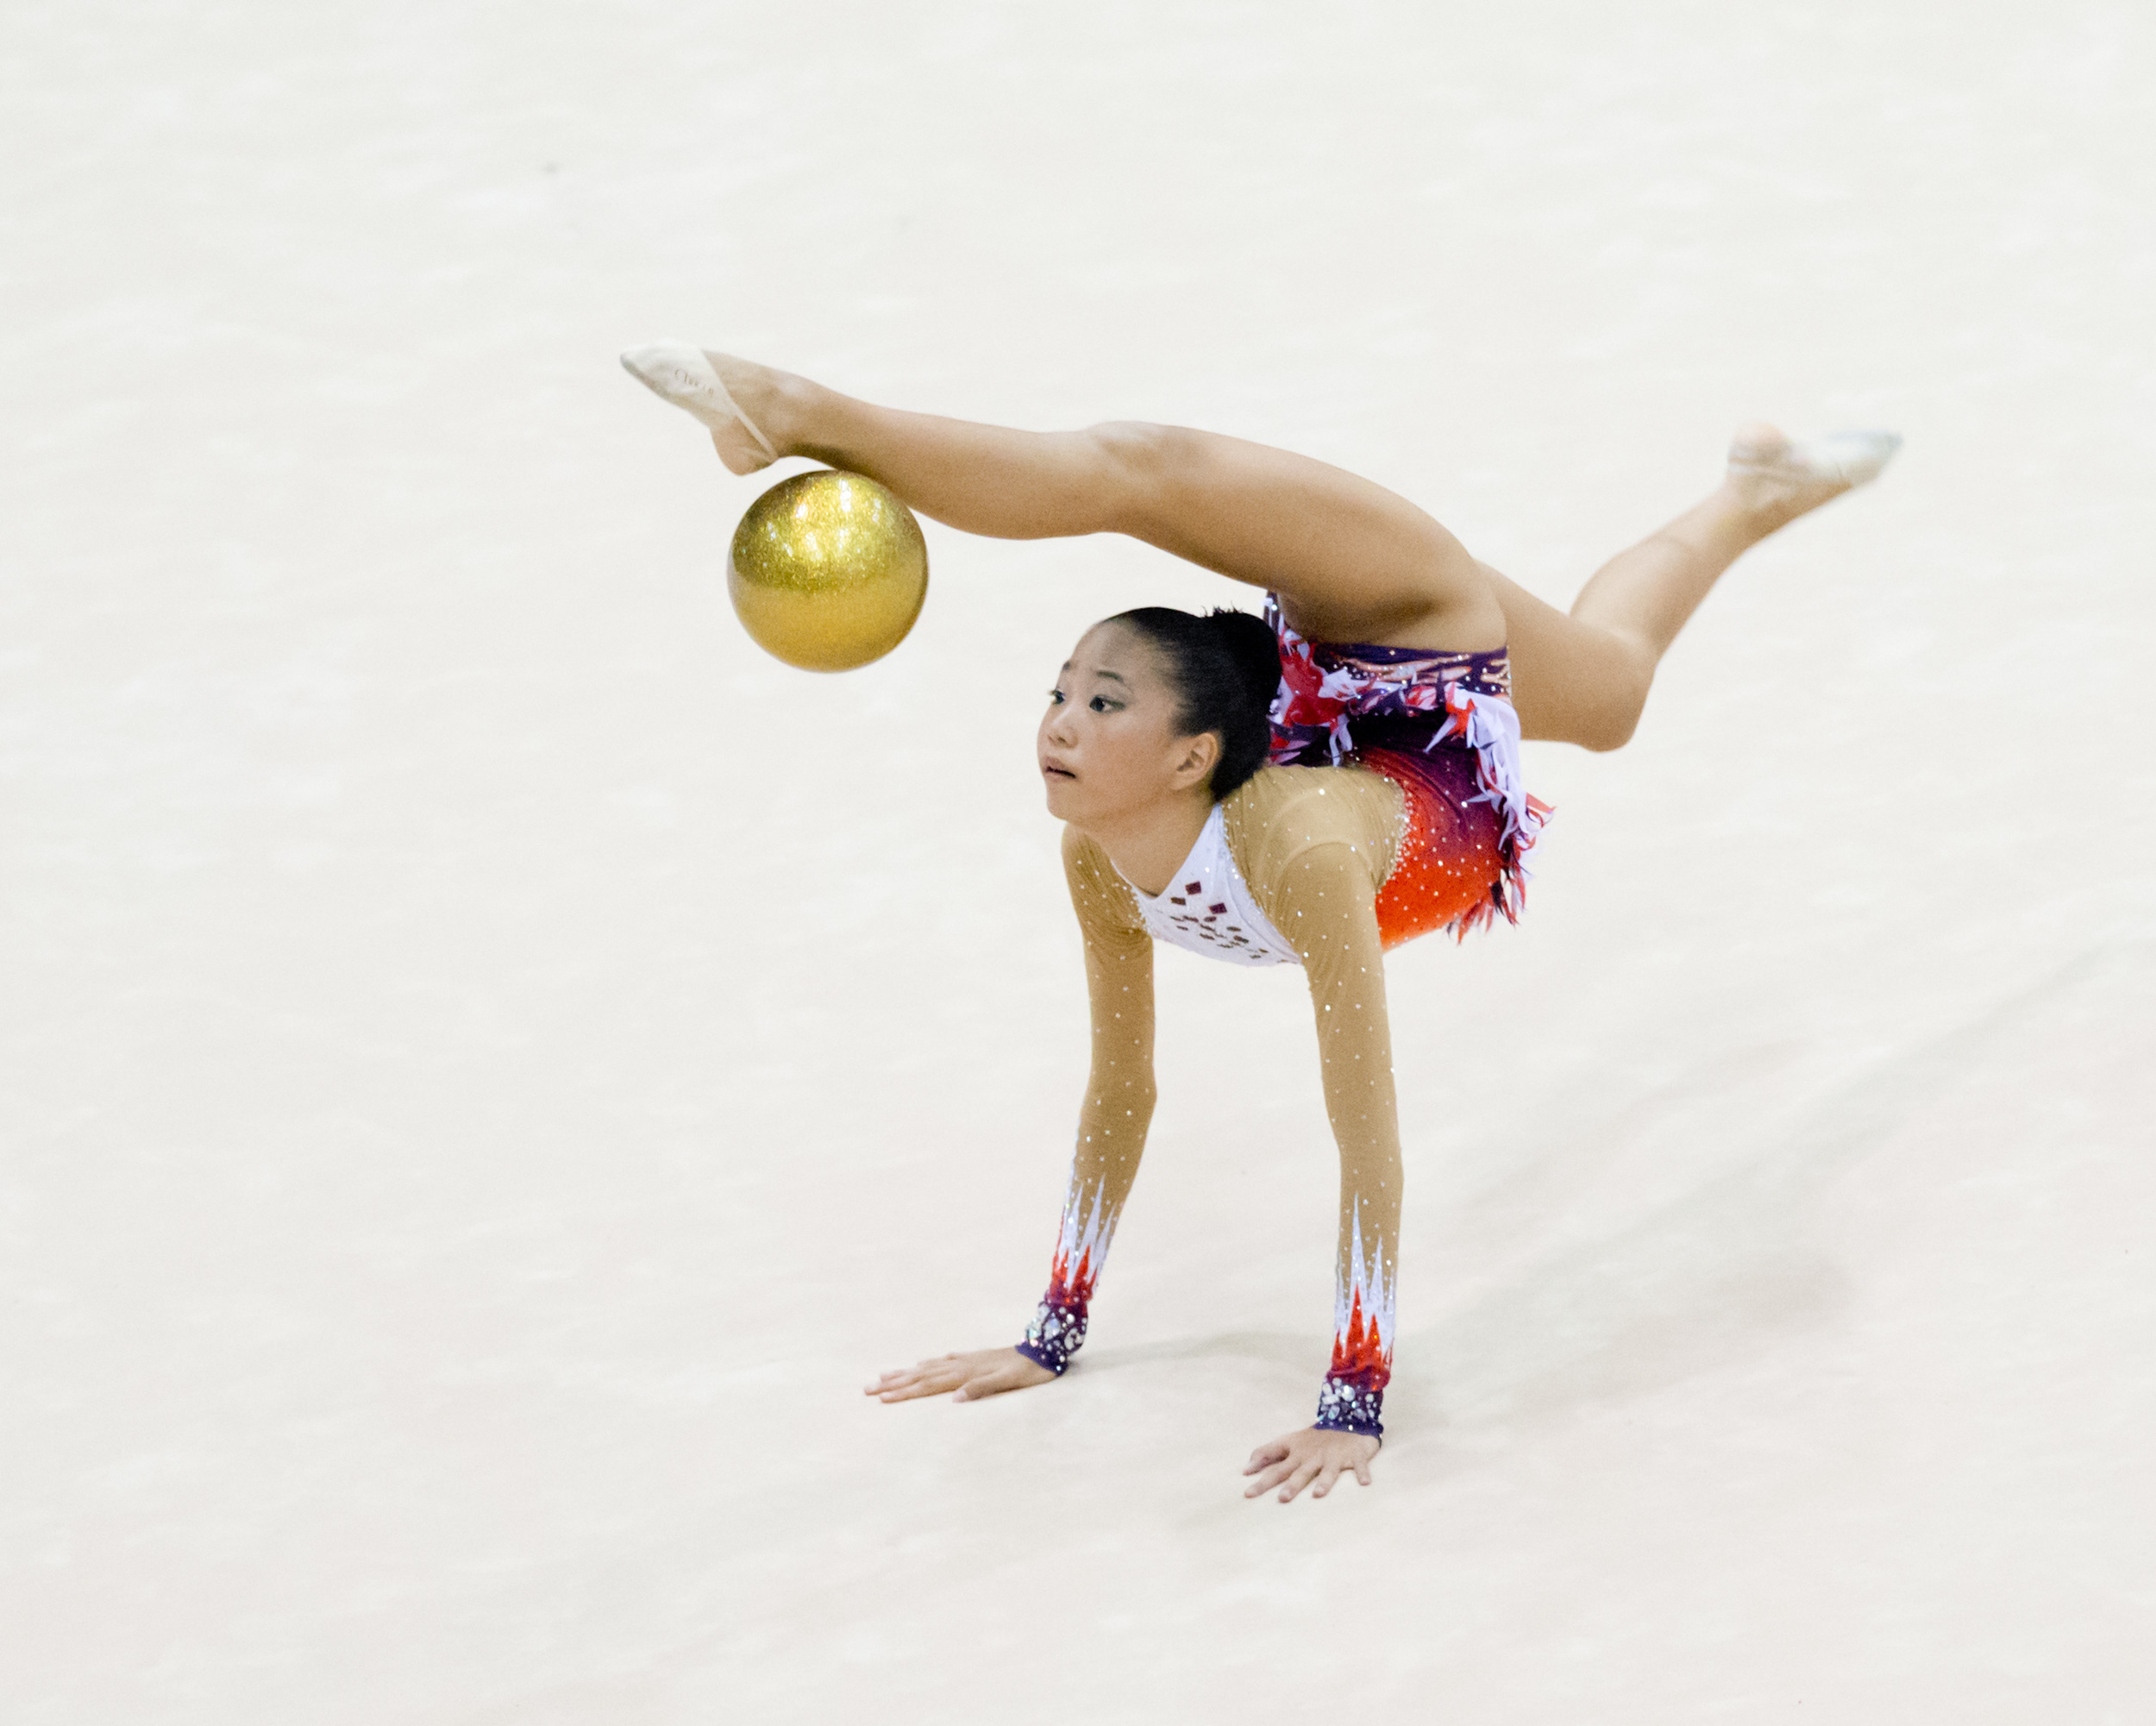 A gymnast bounces her ball during the Singapore Open at the Bishan Sports Hall.